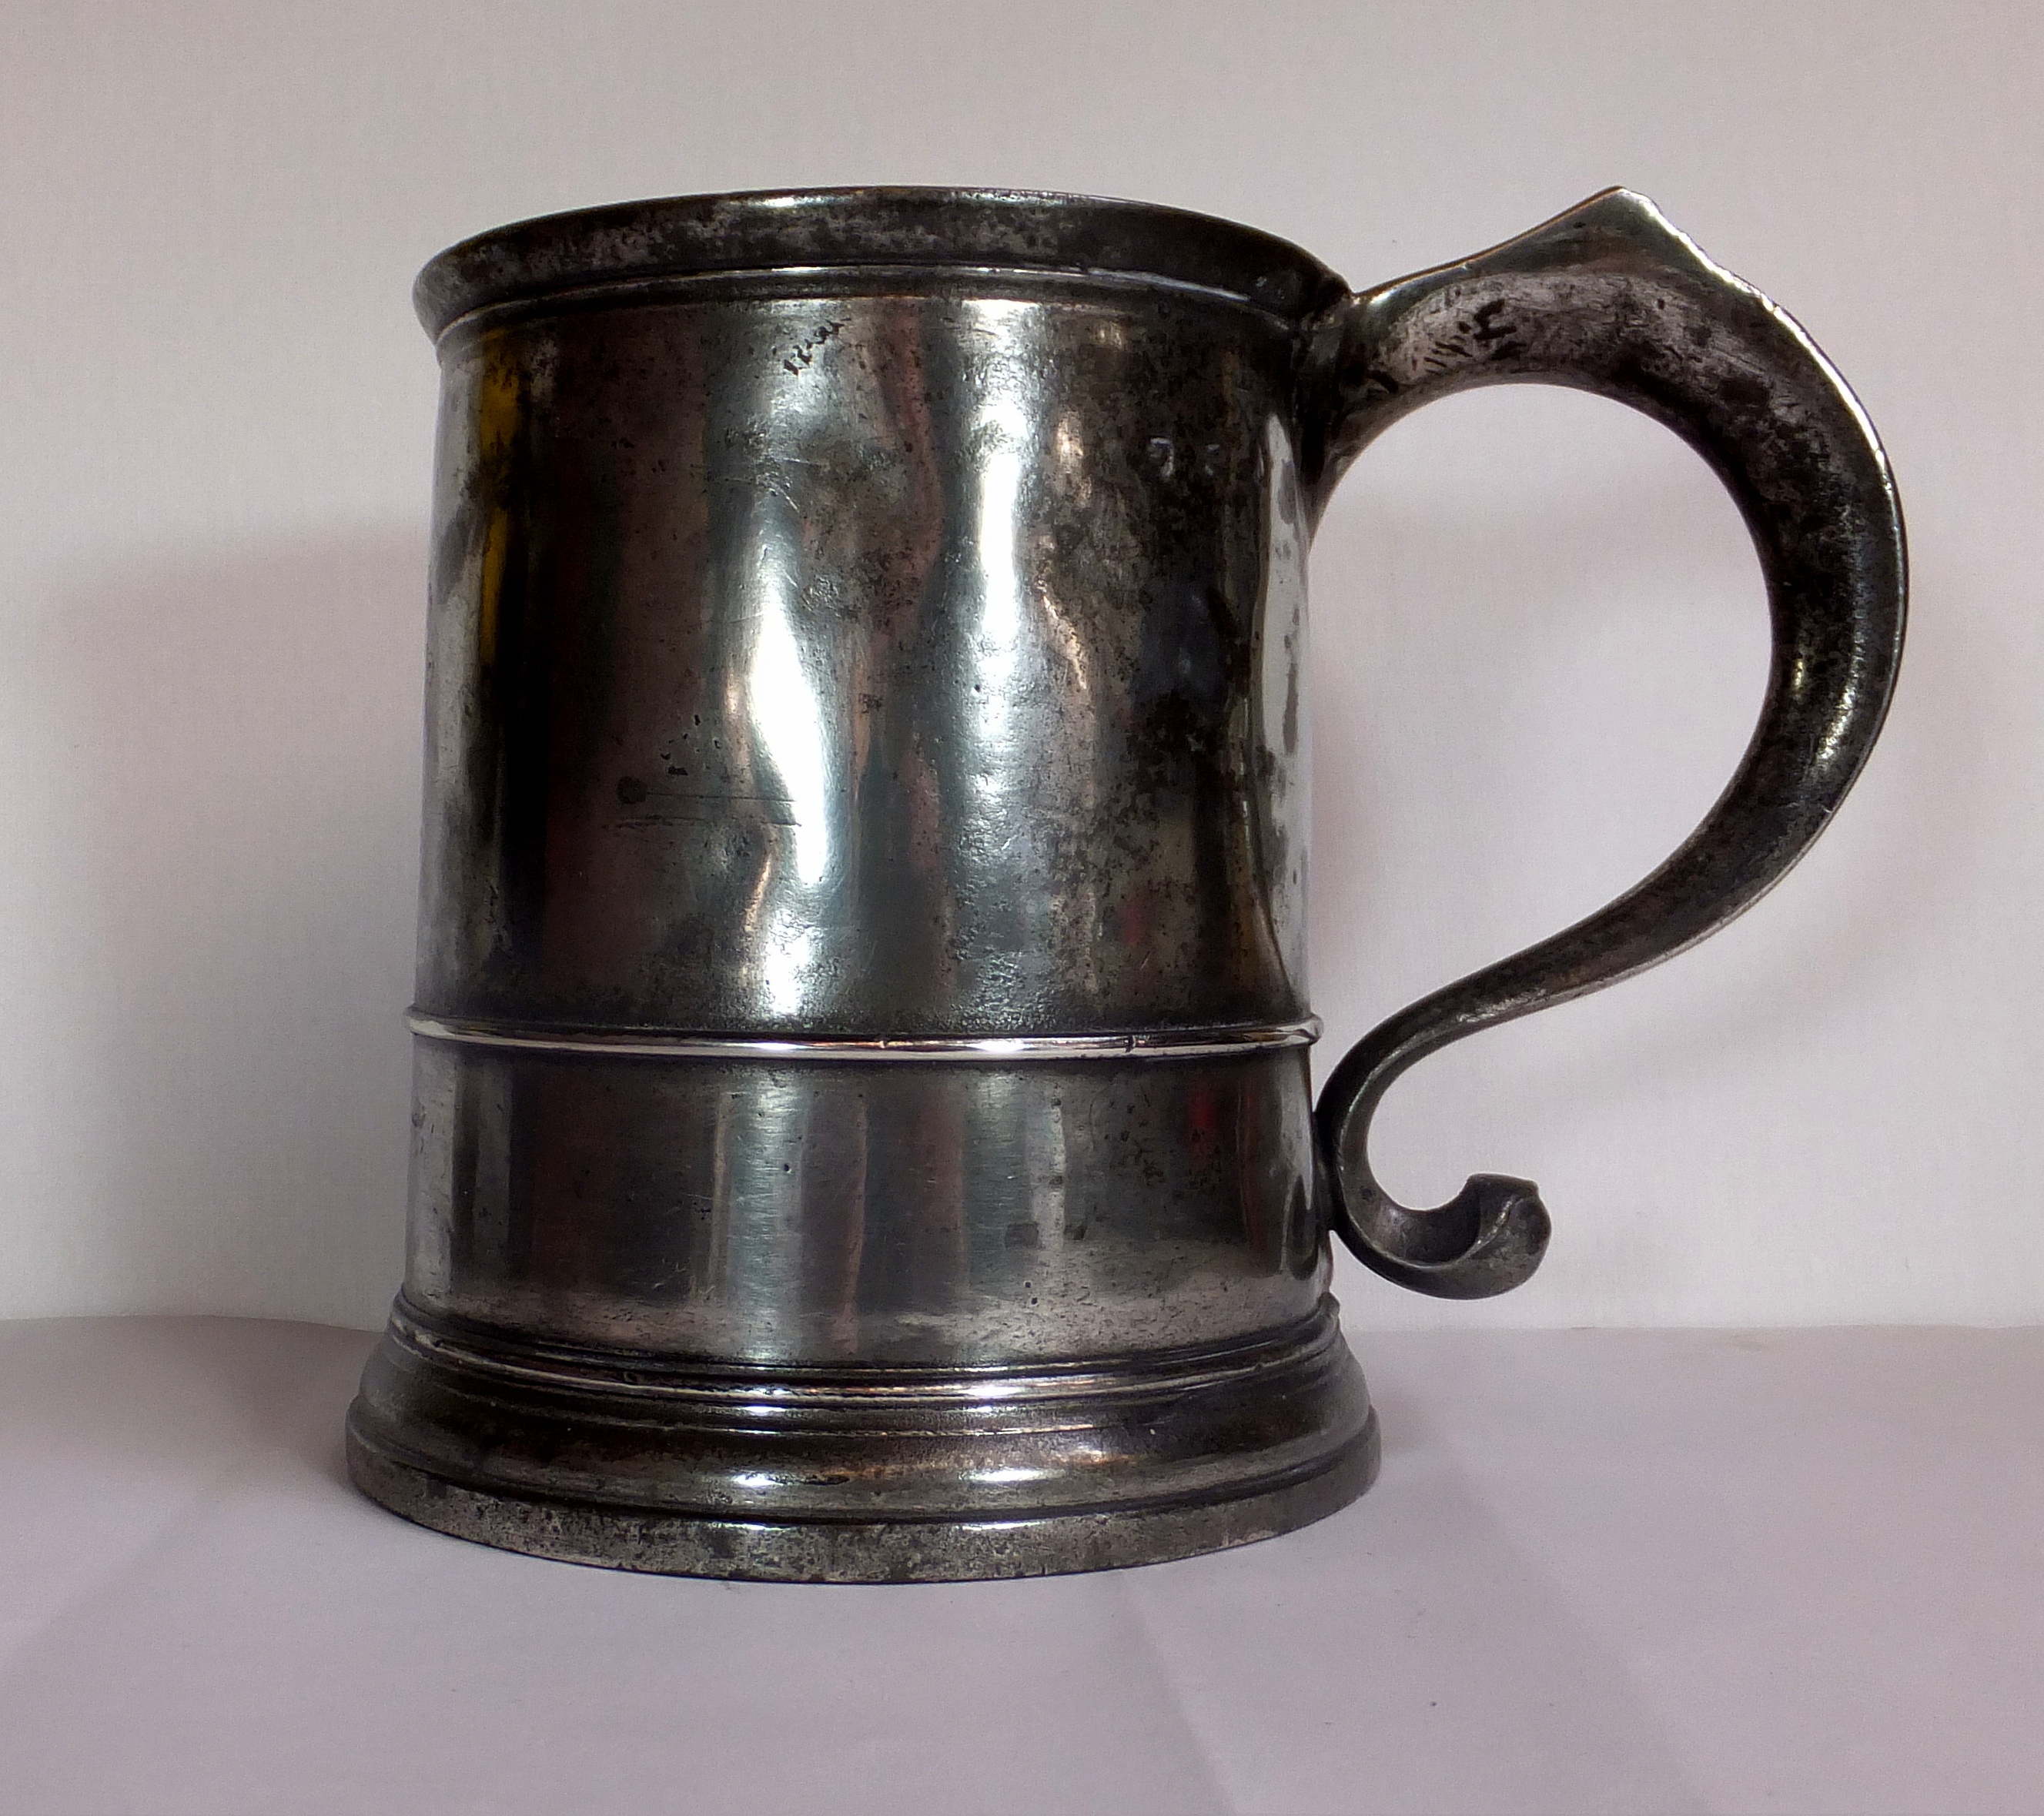 Pewter for drinking | The Pewter Society